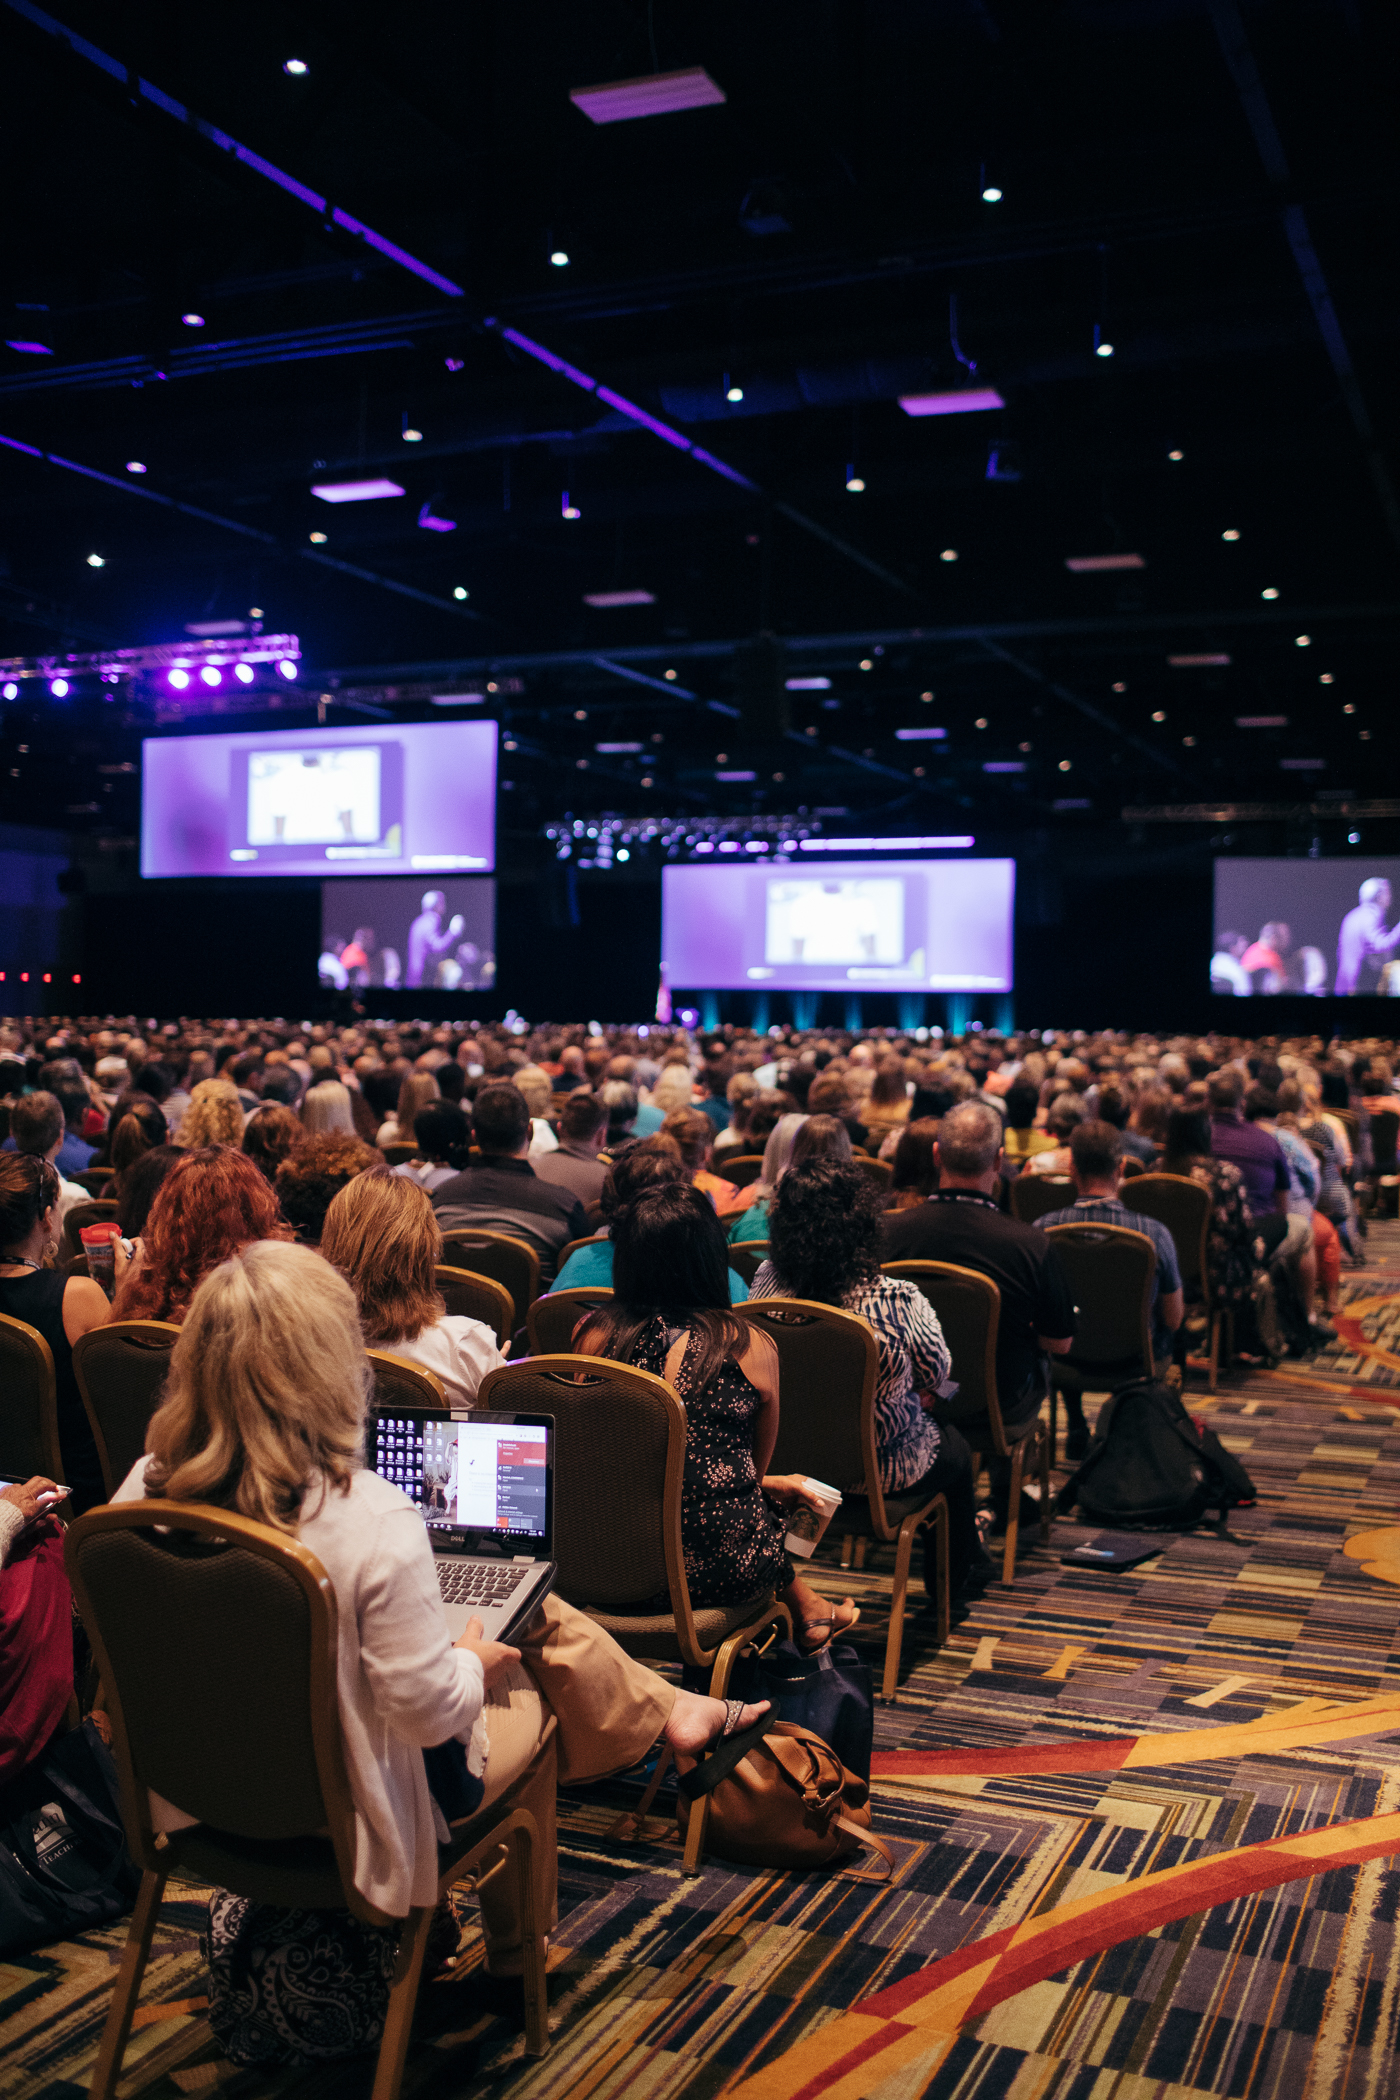 live event commercial photography brand storytelling for education florida conference photographer ©2018abigailbobophotography-37.jpg